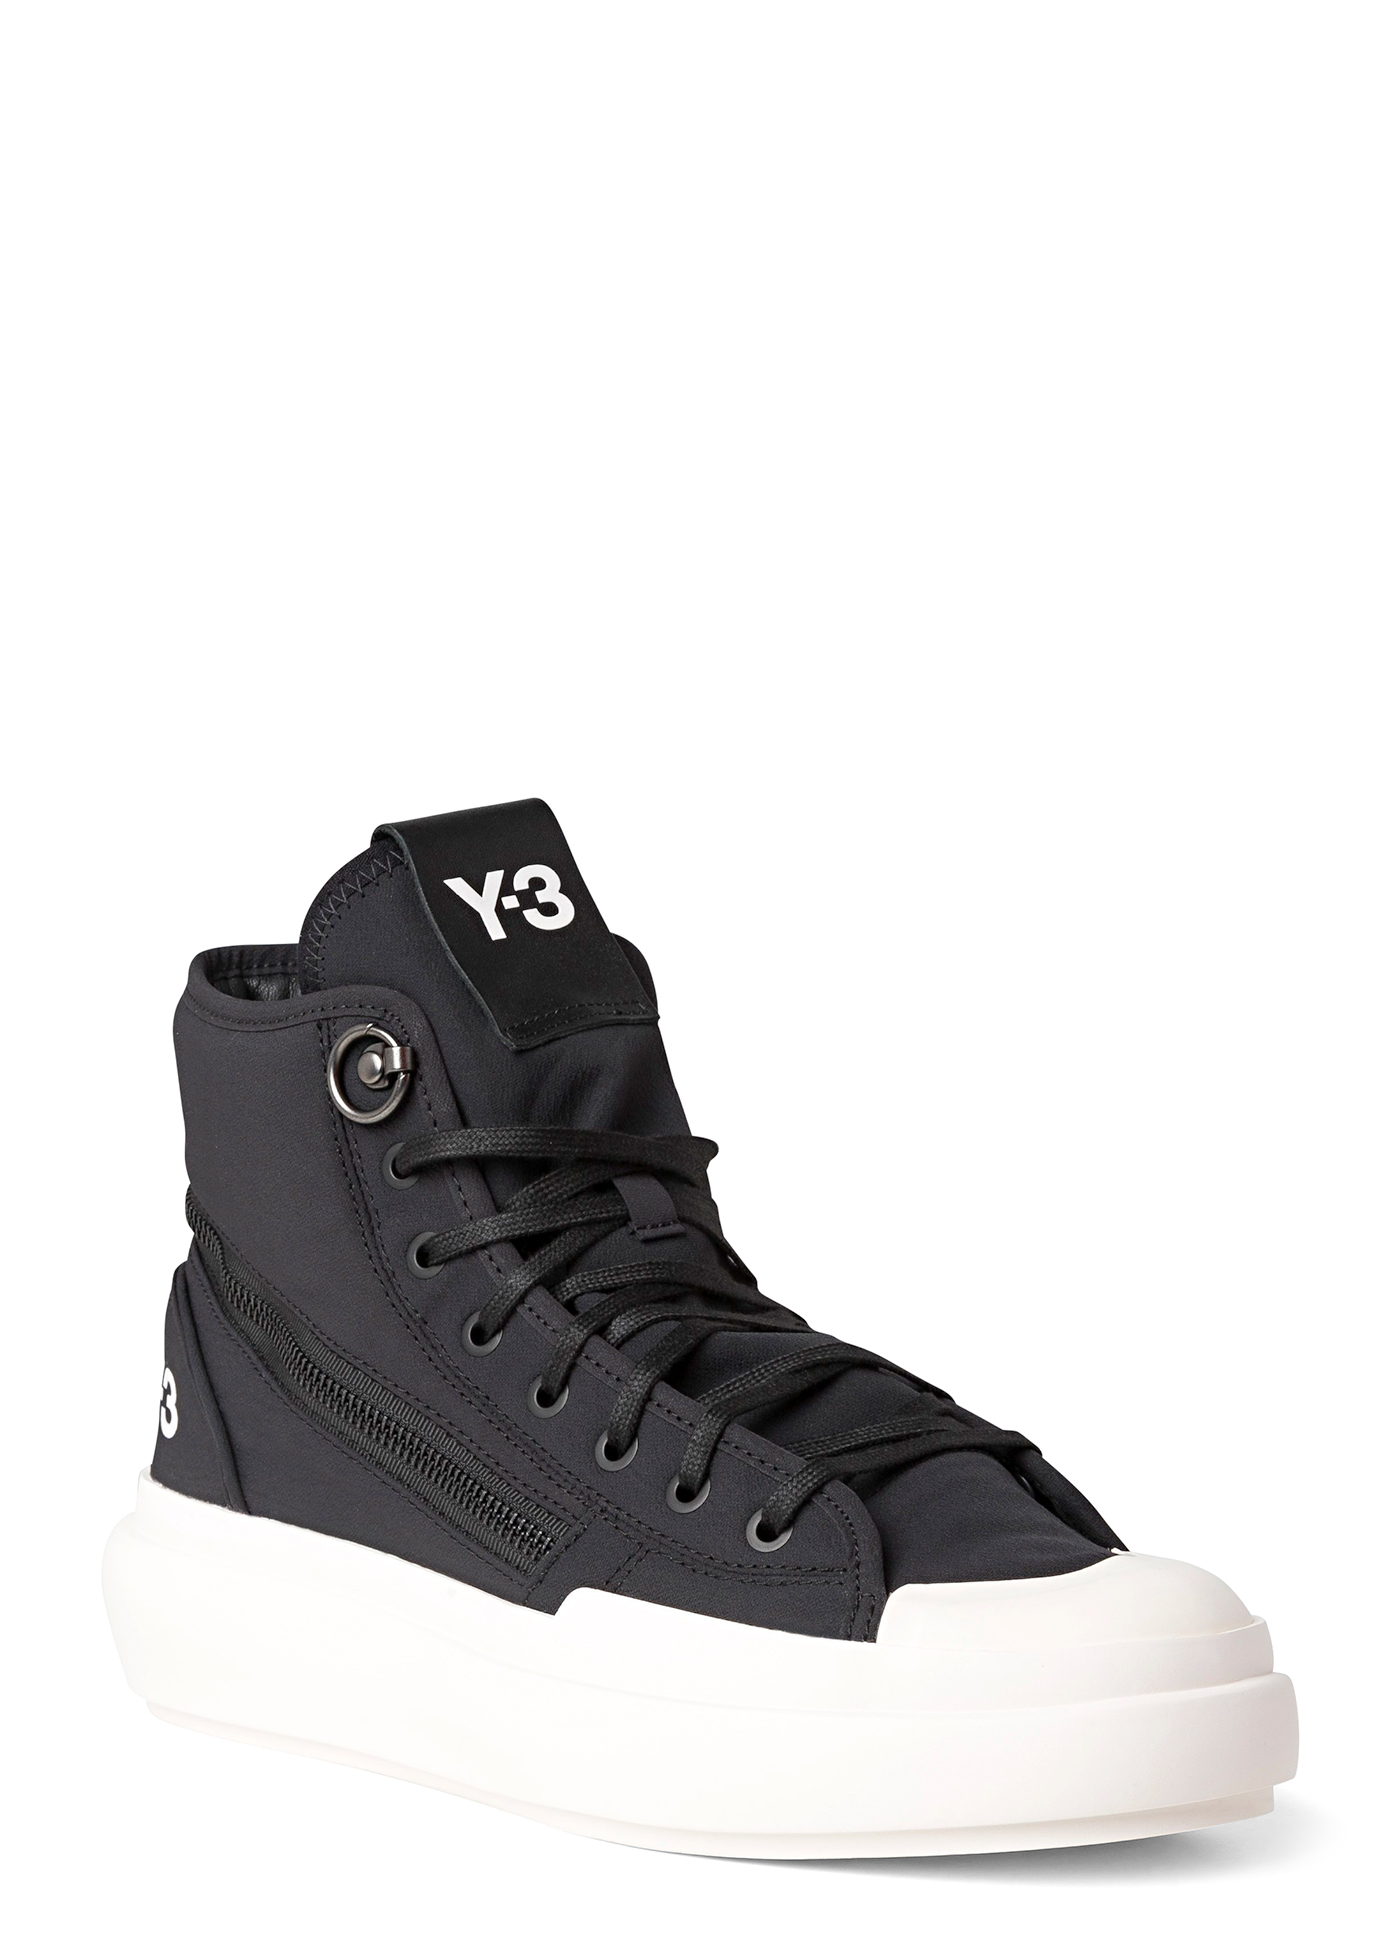 Y-3 CLASSIC COURT HIGH V1 image number 1